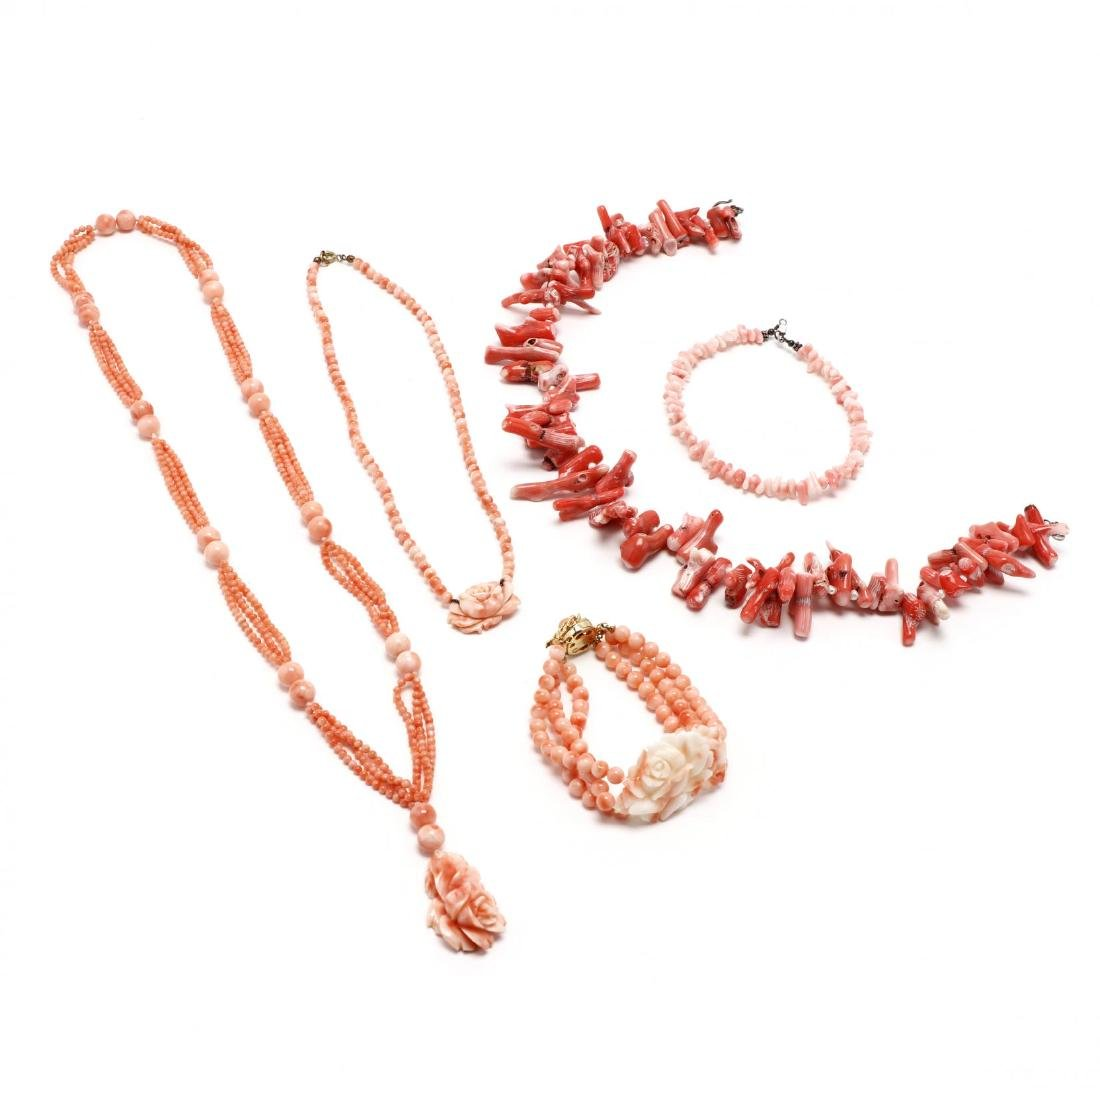 Five Coral Bead Jewelry Items